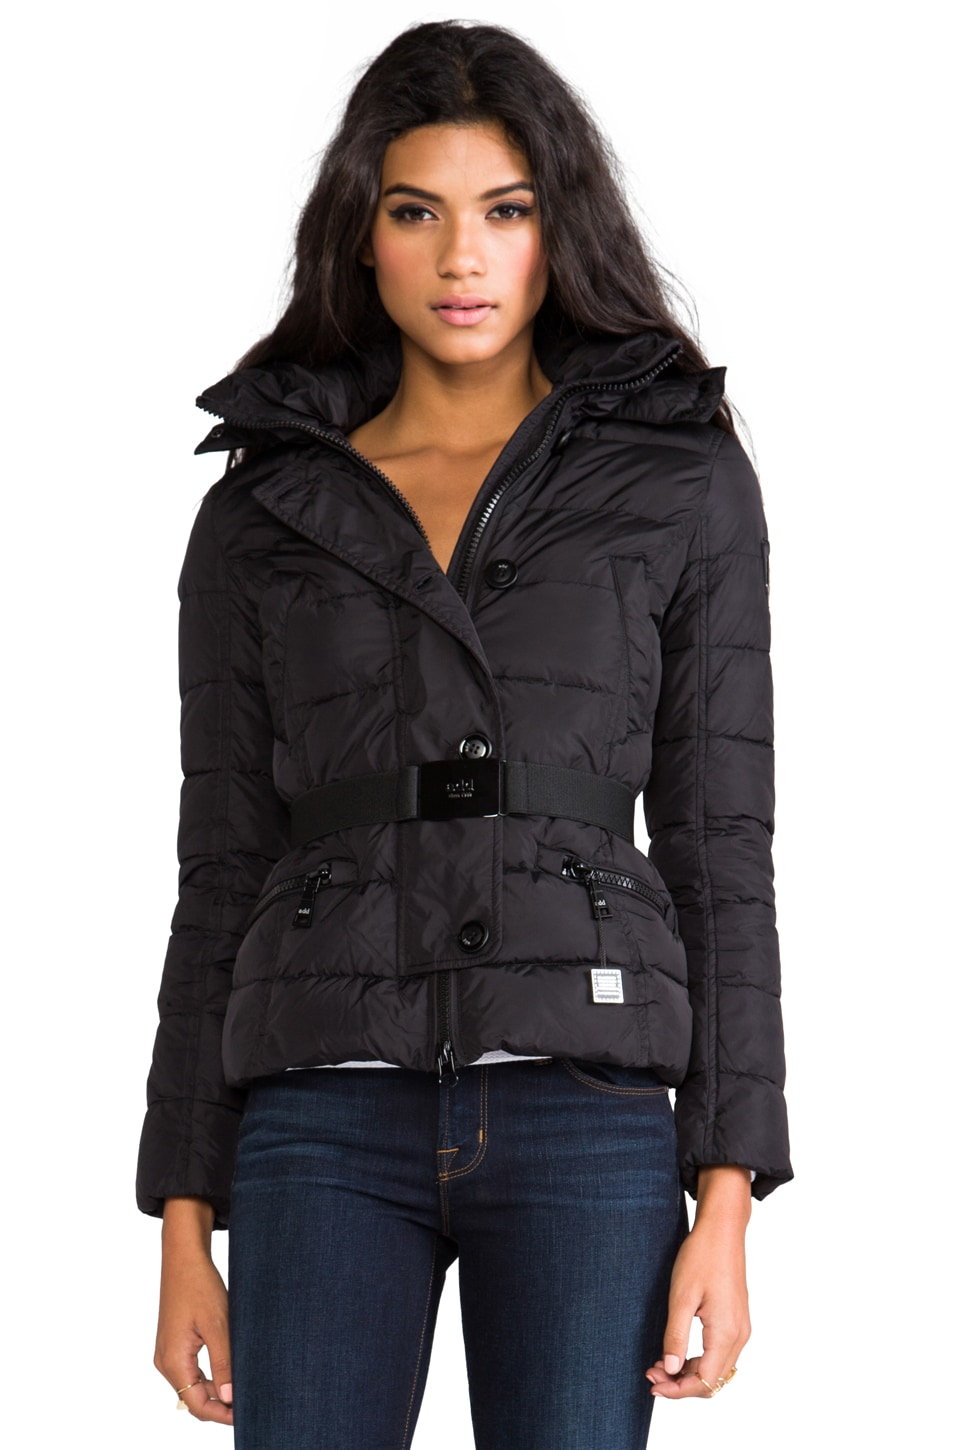 ADD Down Jacket With Fur Boarder in Black